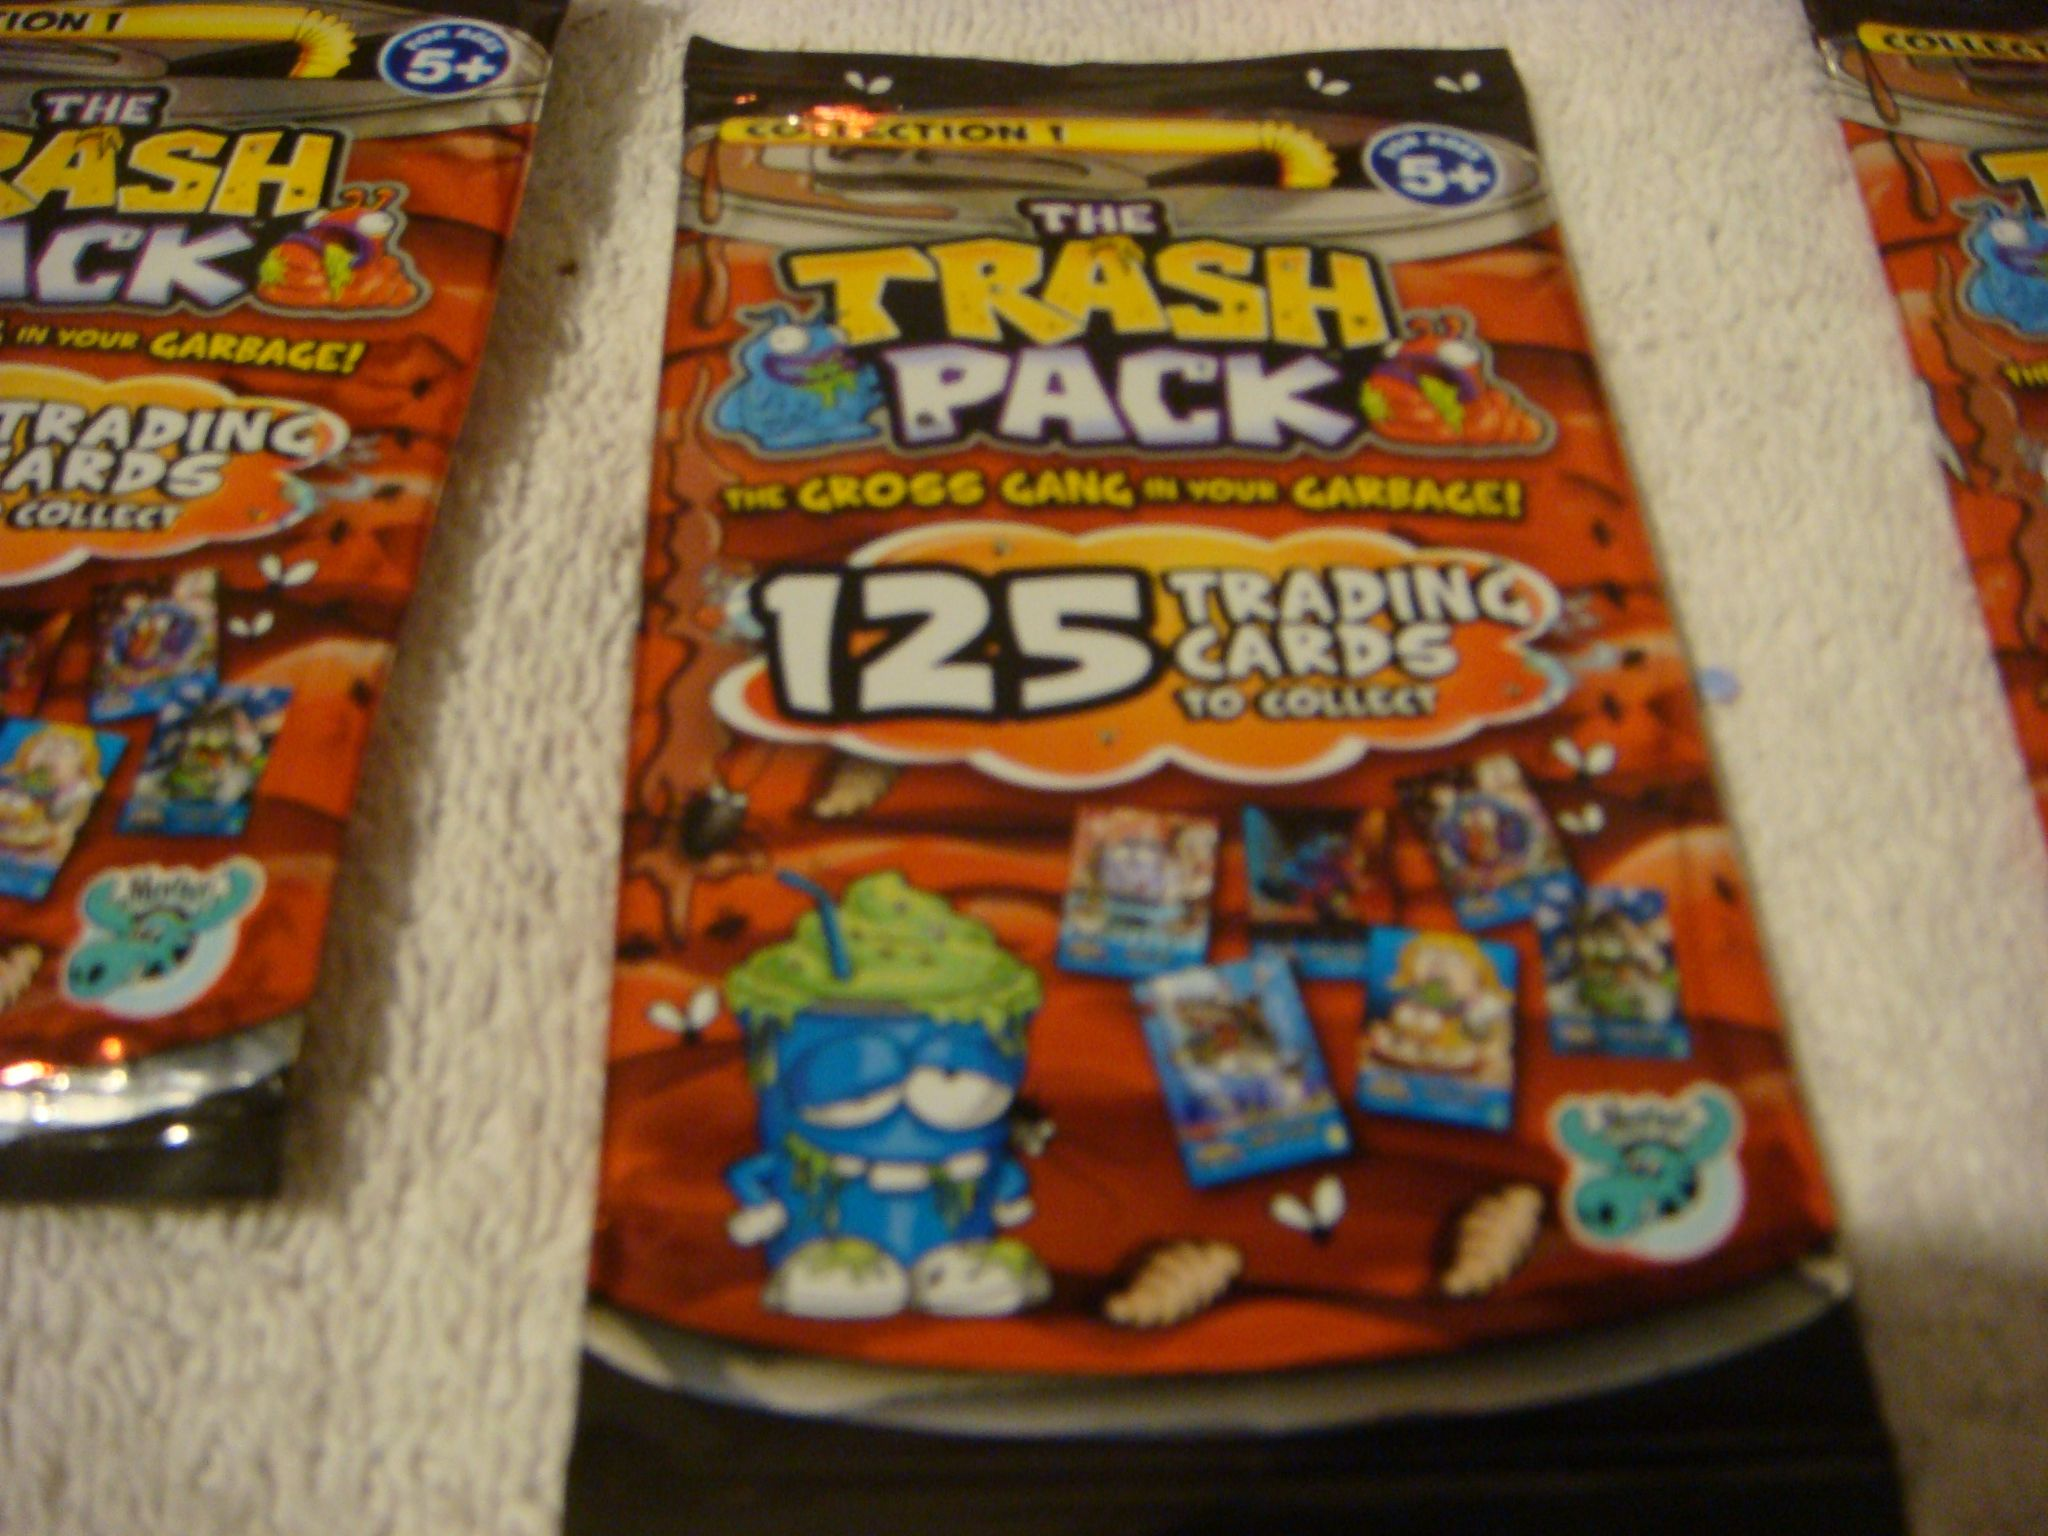 Collection 1 The Gross Gang In Your Garbage The Trash Pack Trading Card Game